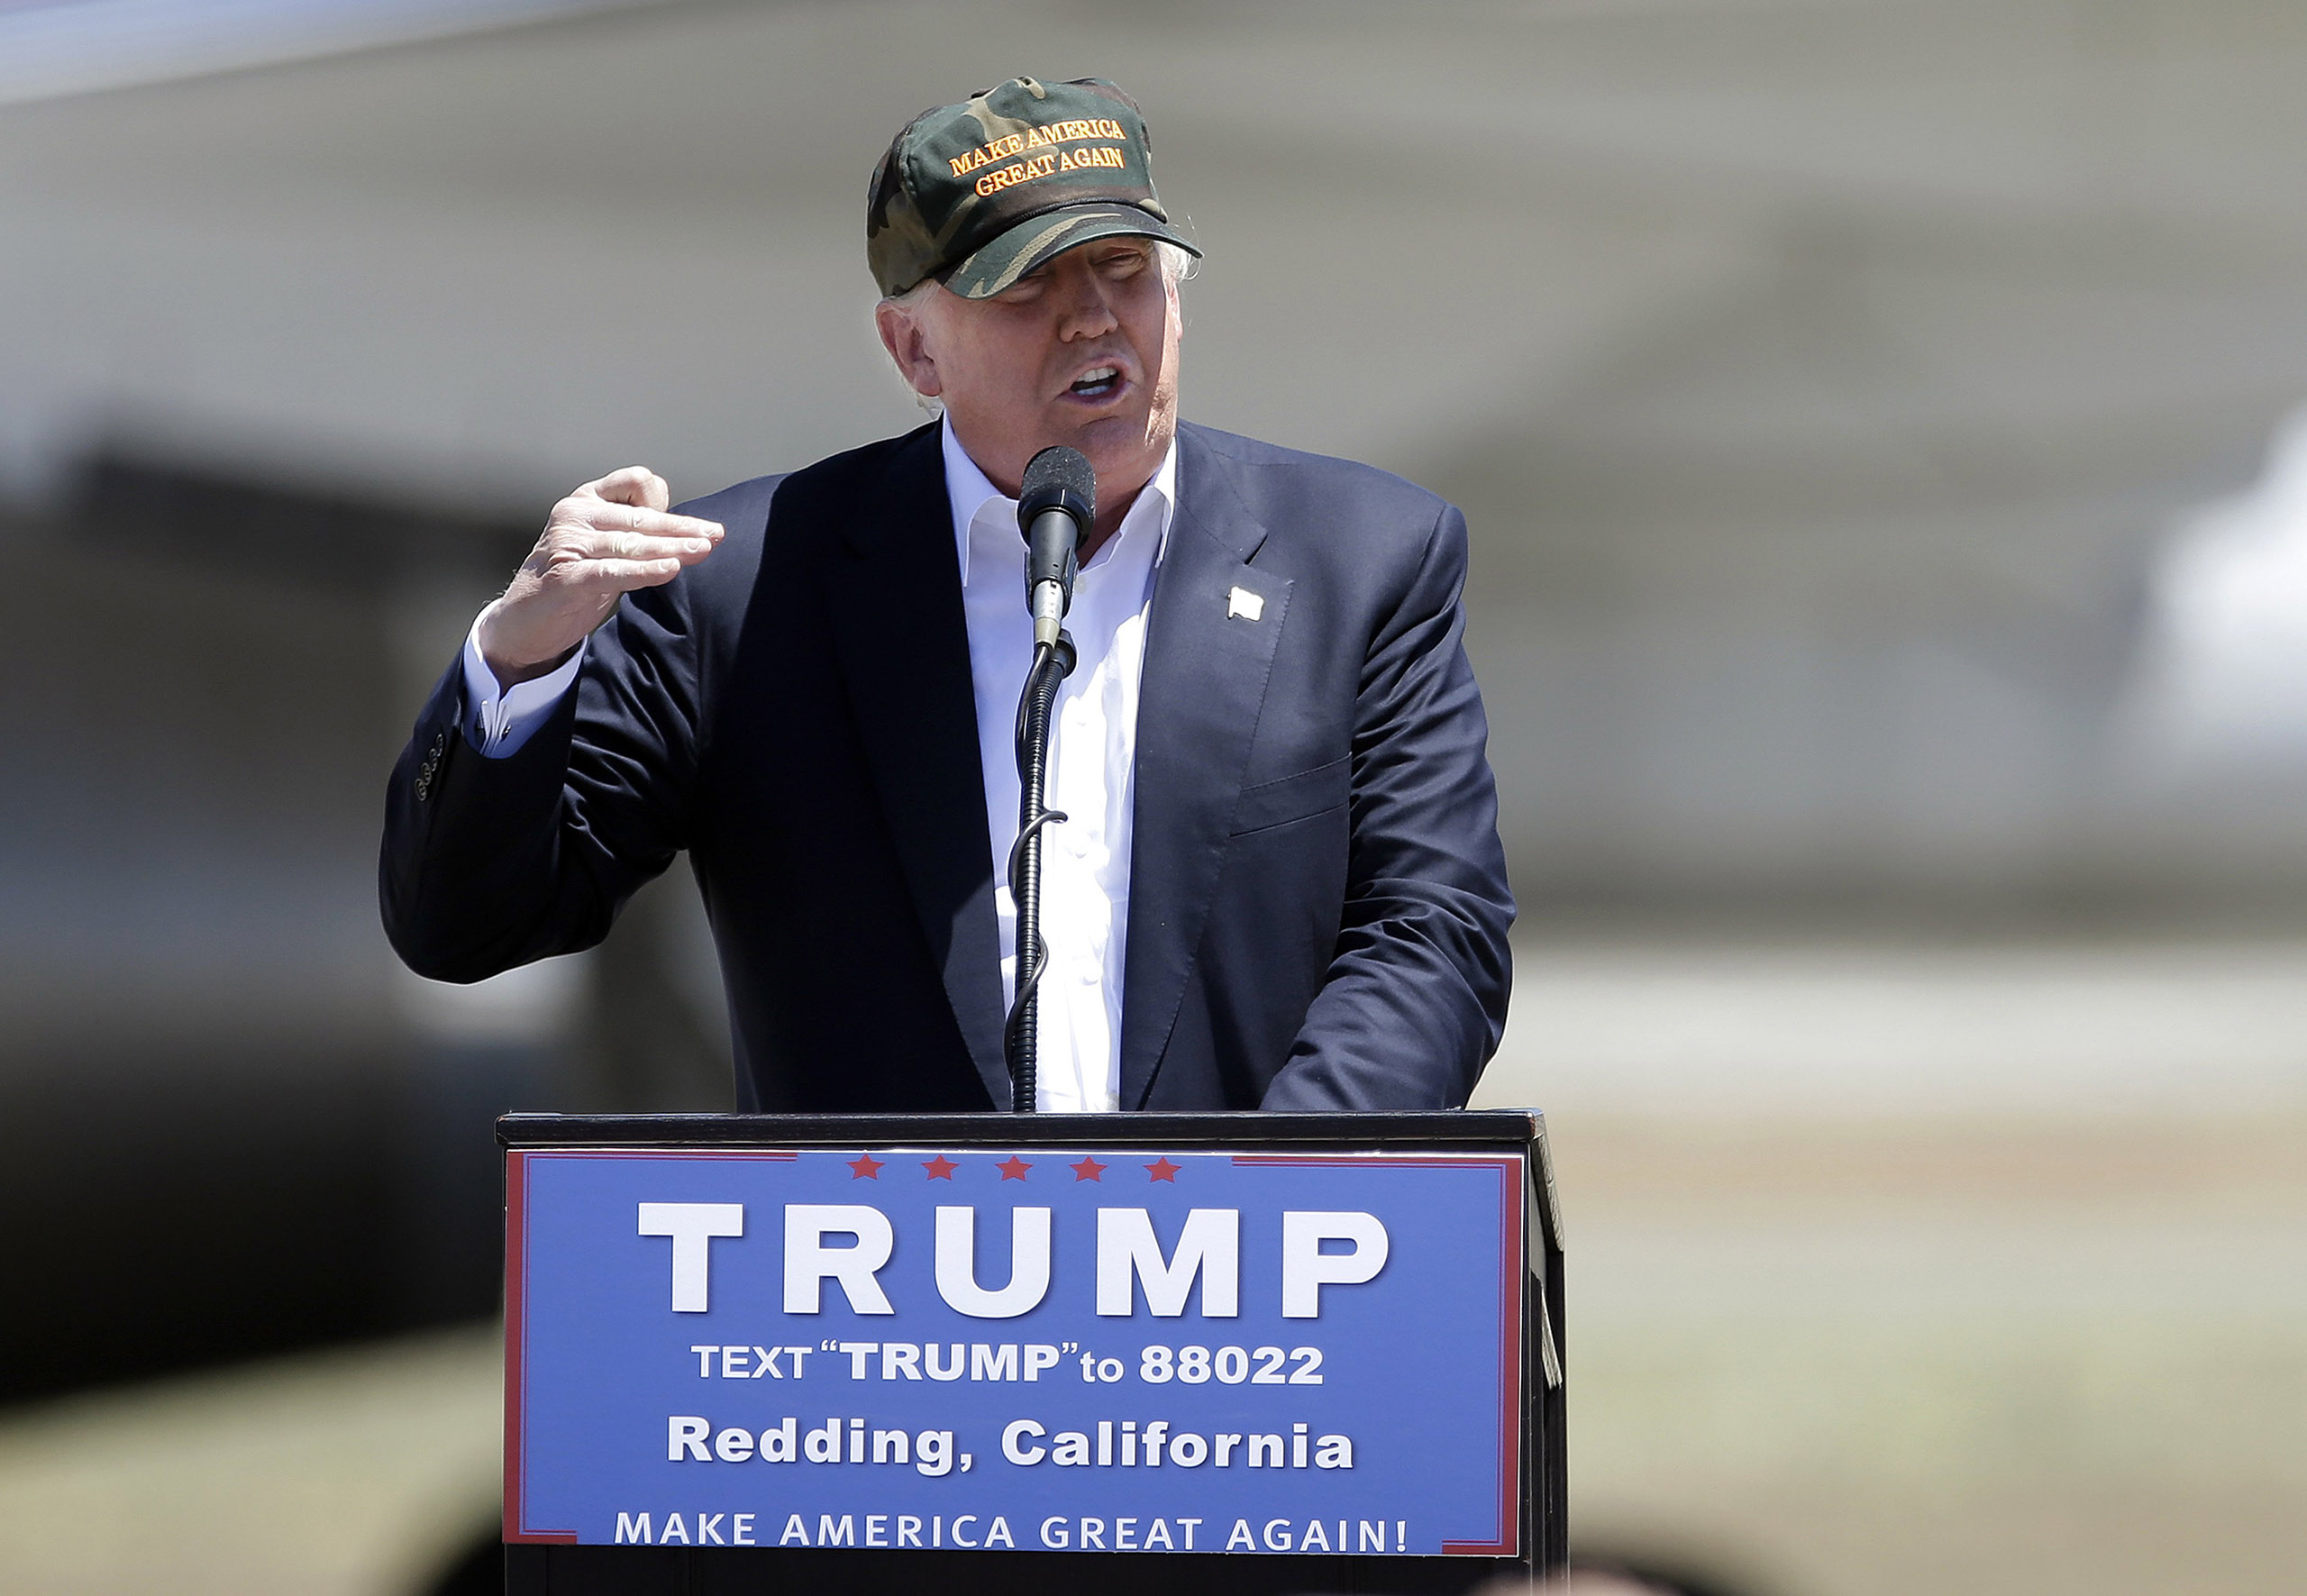 Donald Trump speaks at a campaign rally at the Redding Municipal Airport in Calif., June 3, 2016.